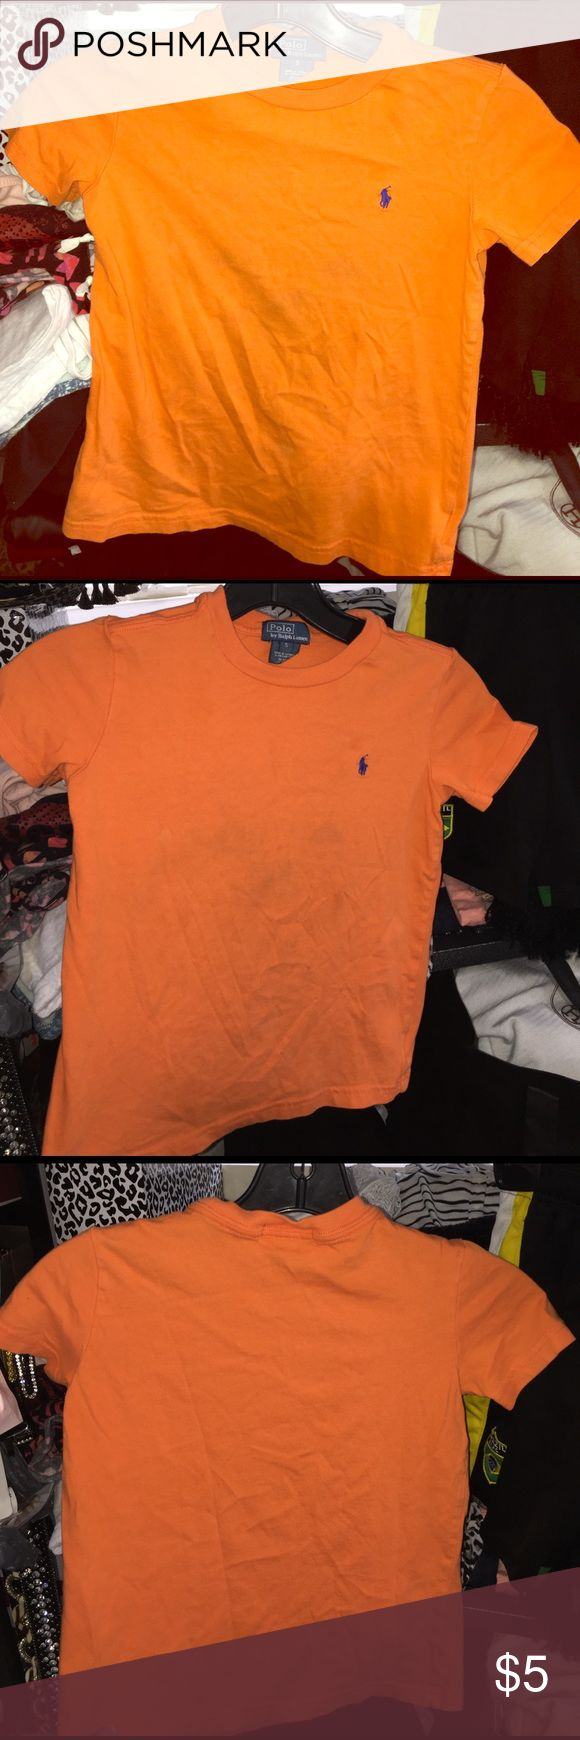 Orange polo by viviglam 👕👕 Boys orange polo shirt has some light spots not noticeable unless looking closely in great condition!!! Polo by Ralph Lauren Shirts & Tops Polos